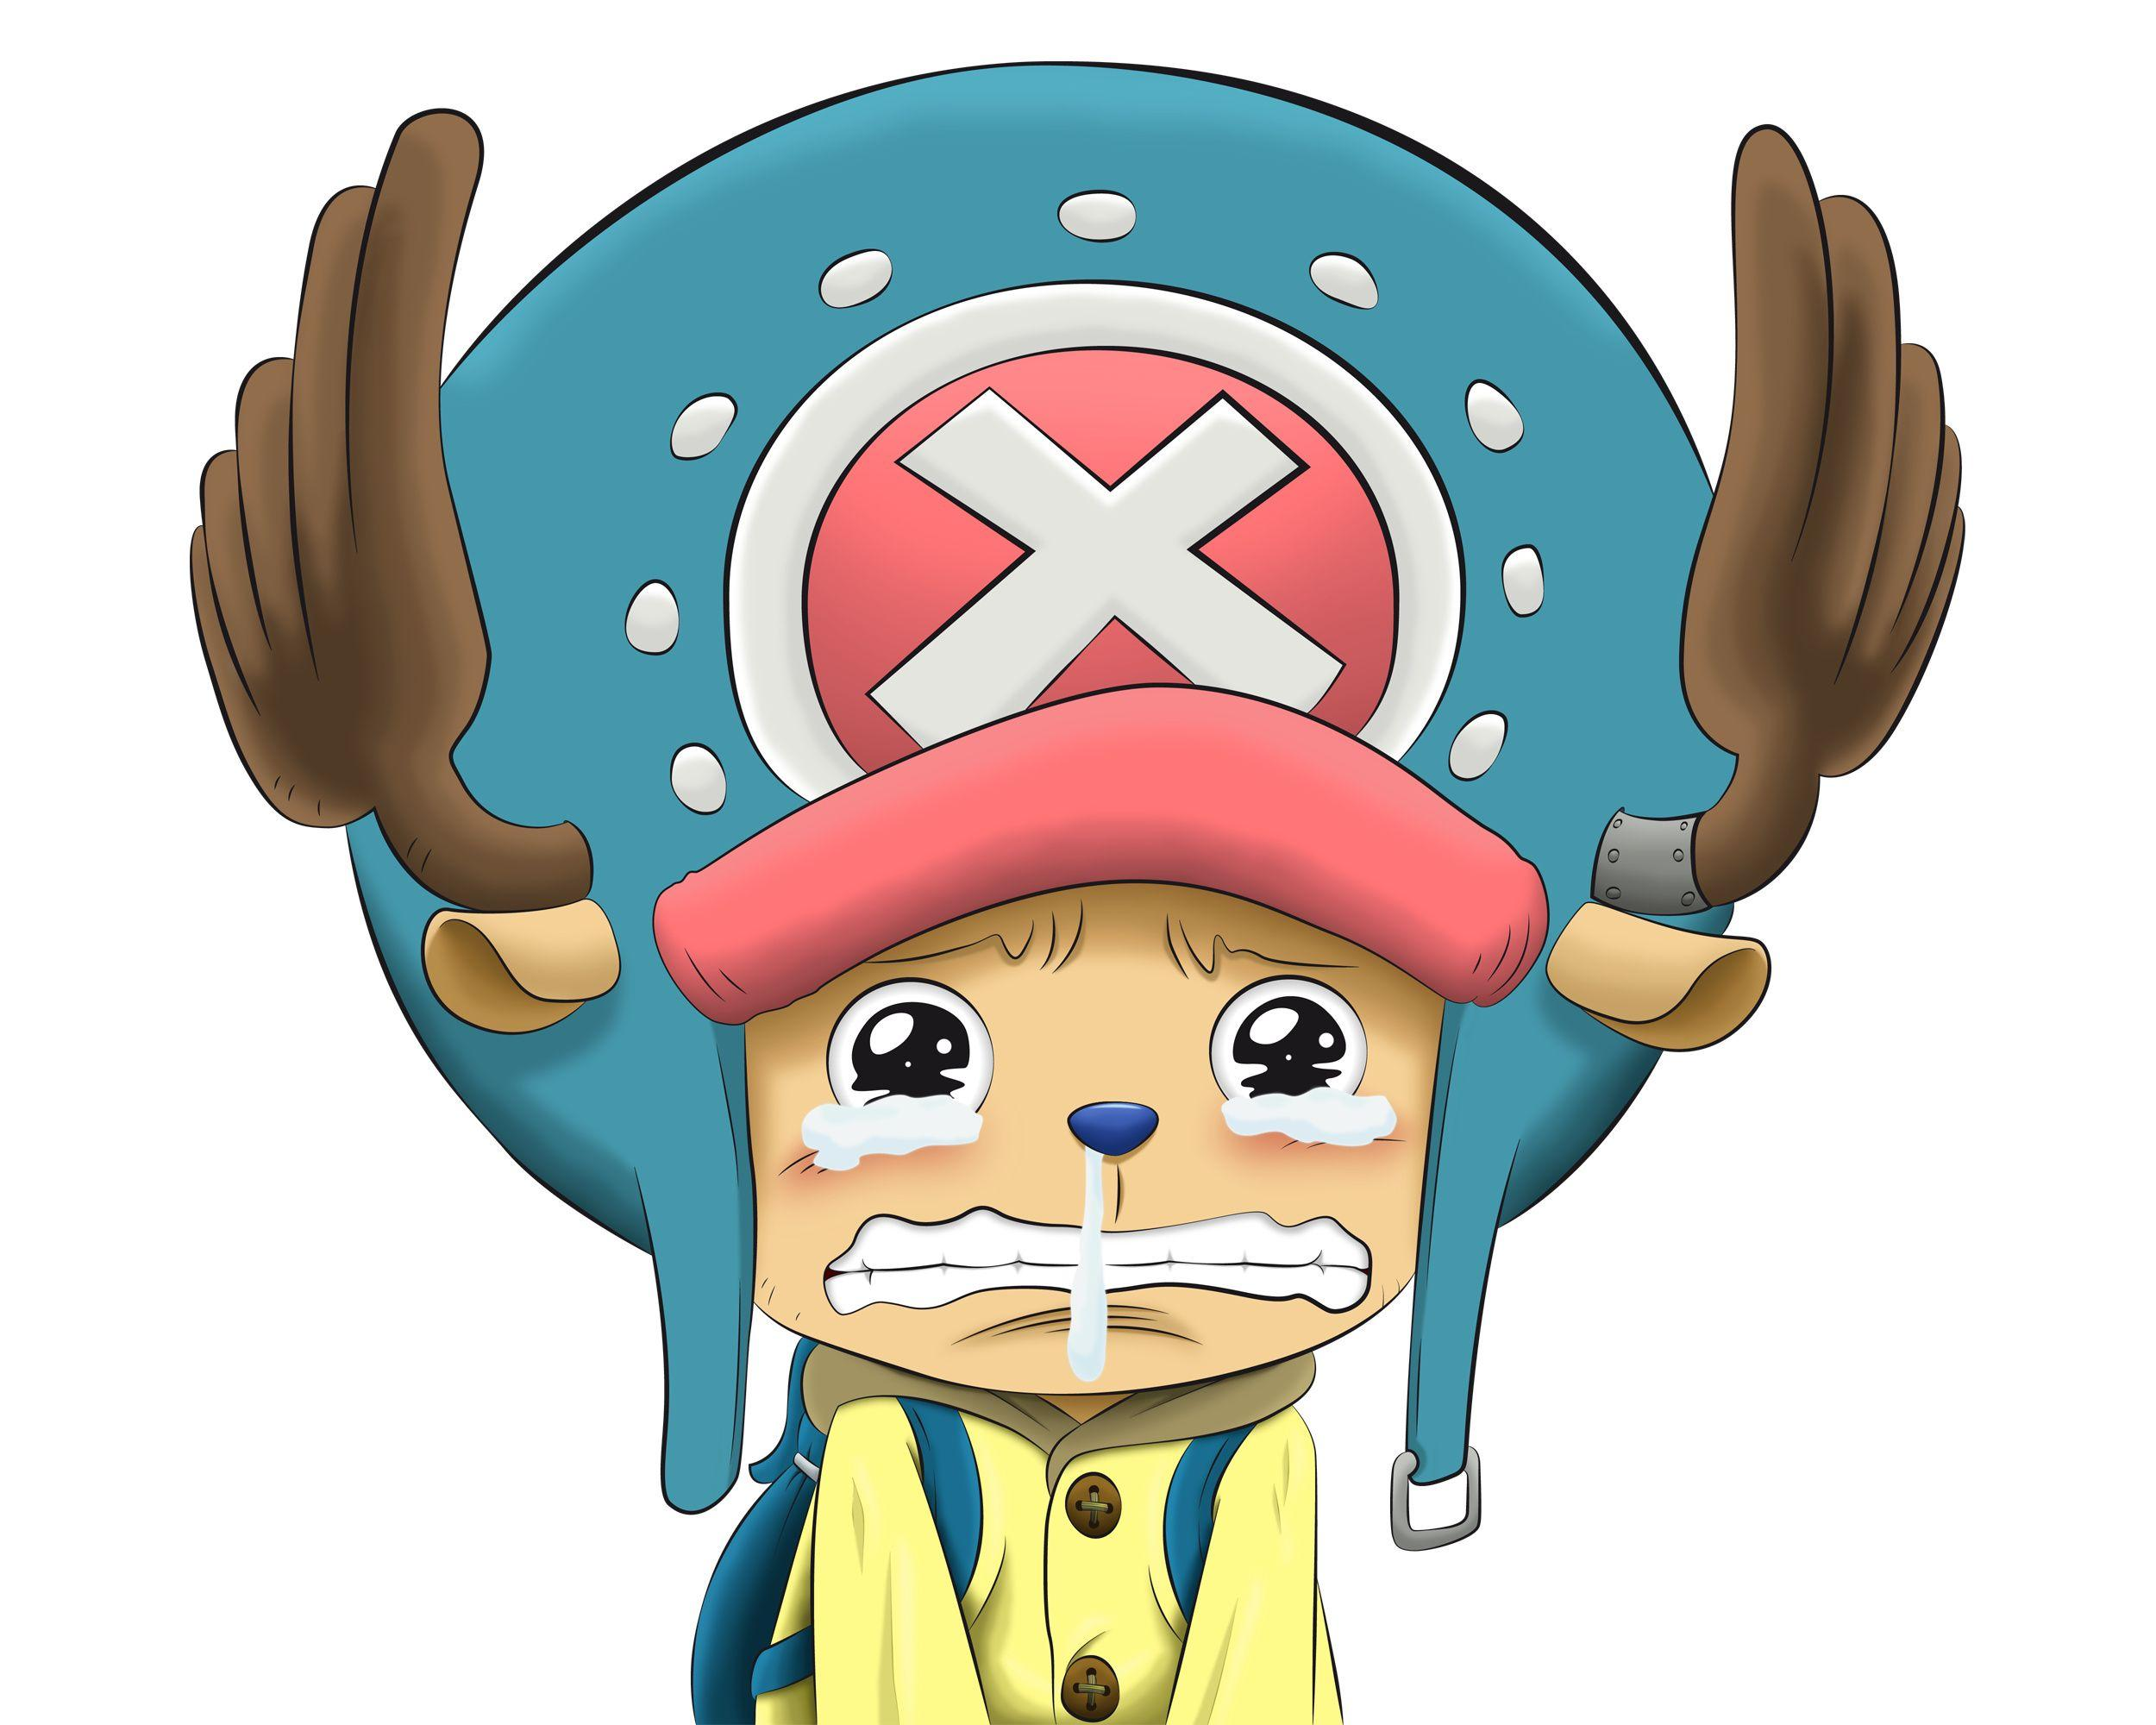 Wallpaper Pemandangan Wallpaper One Piece Lucu